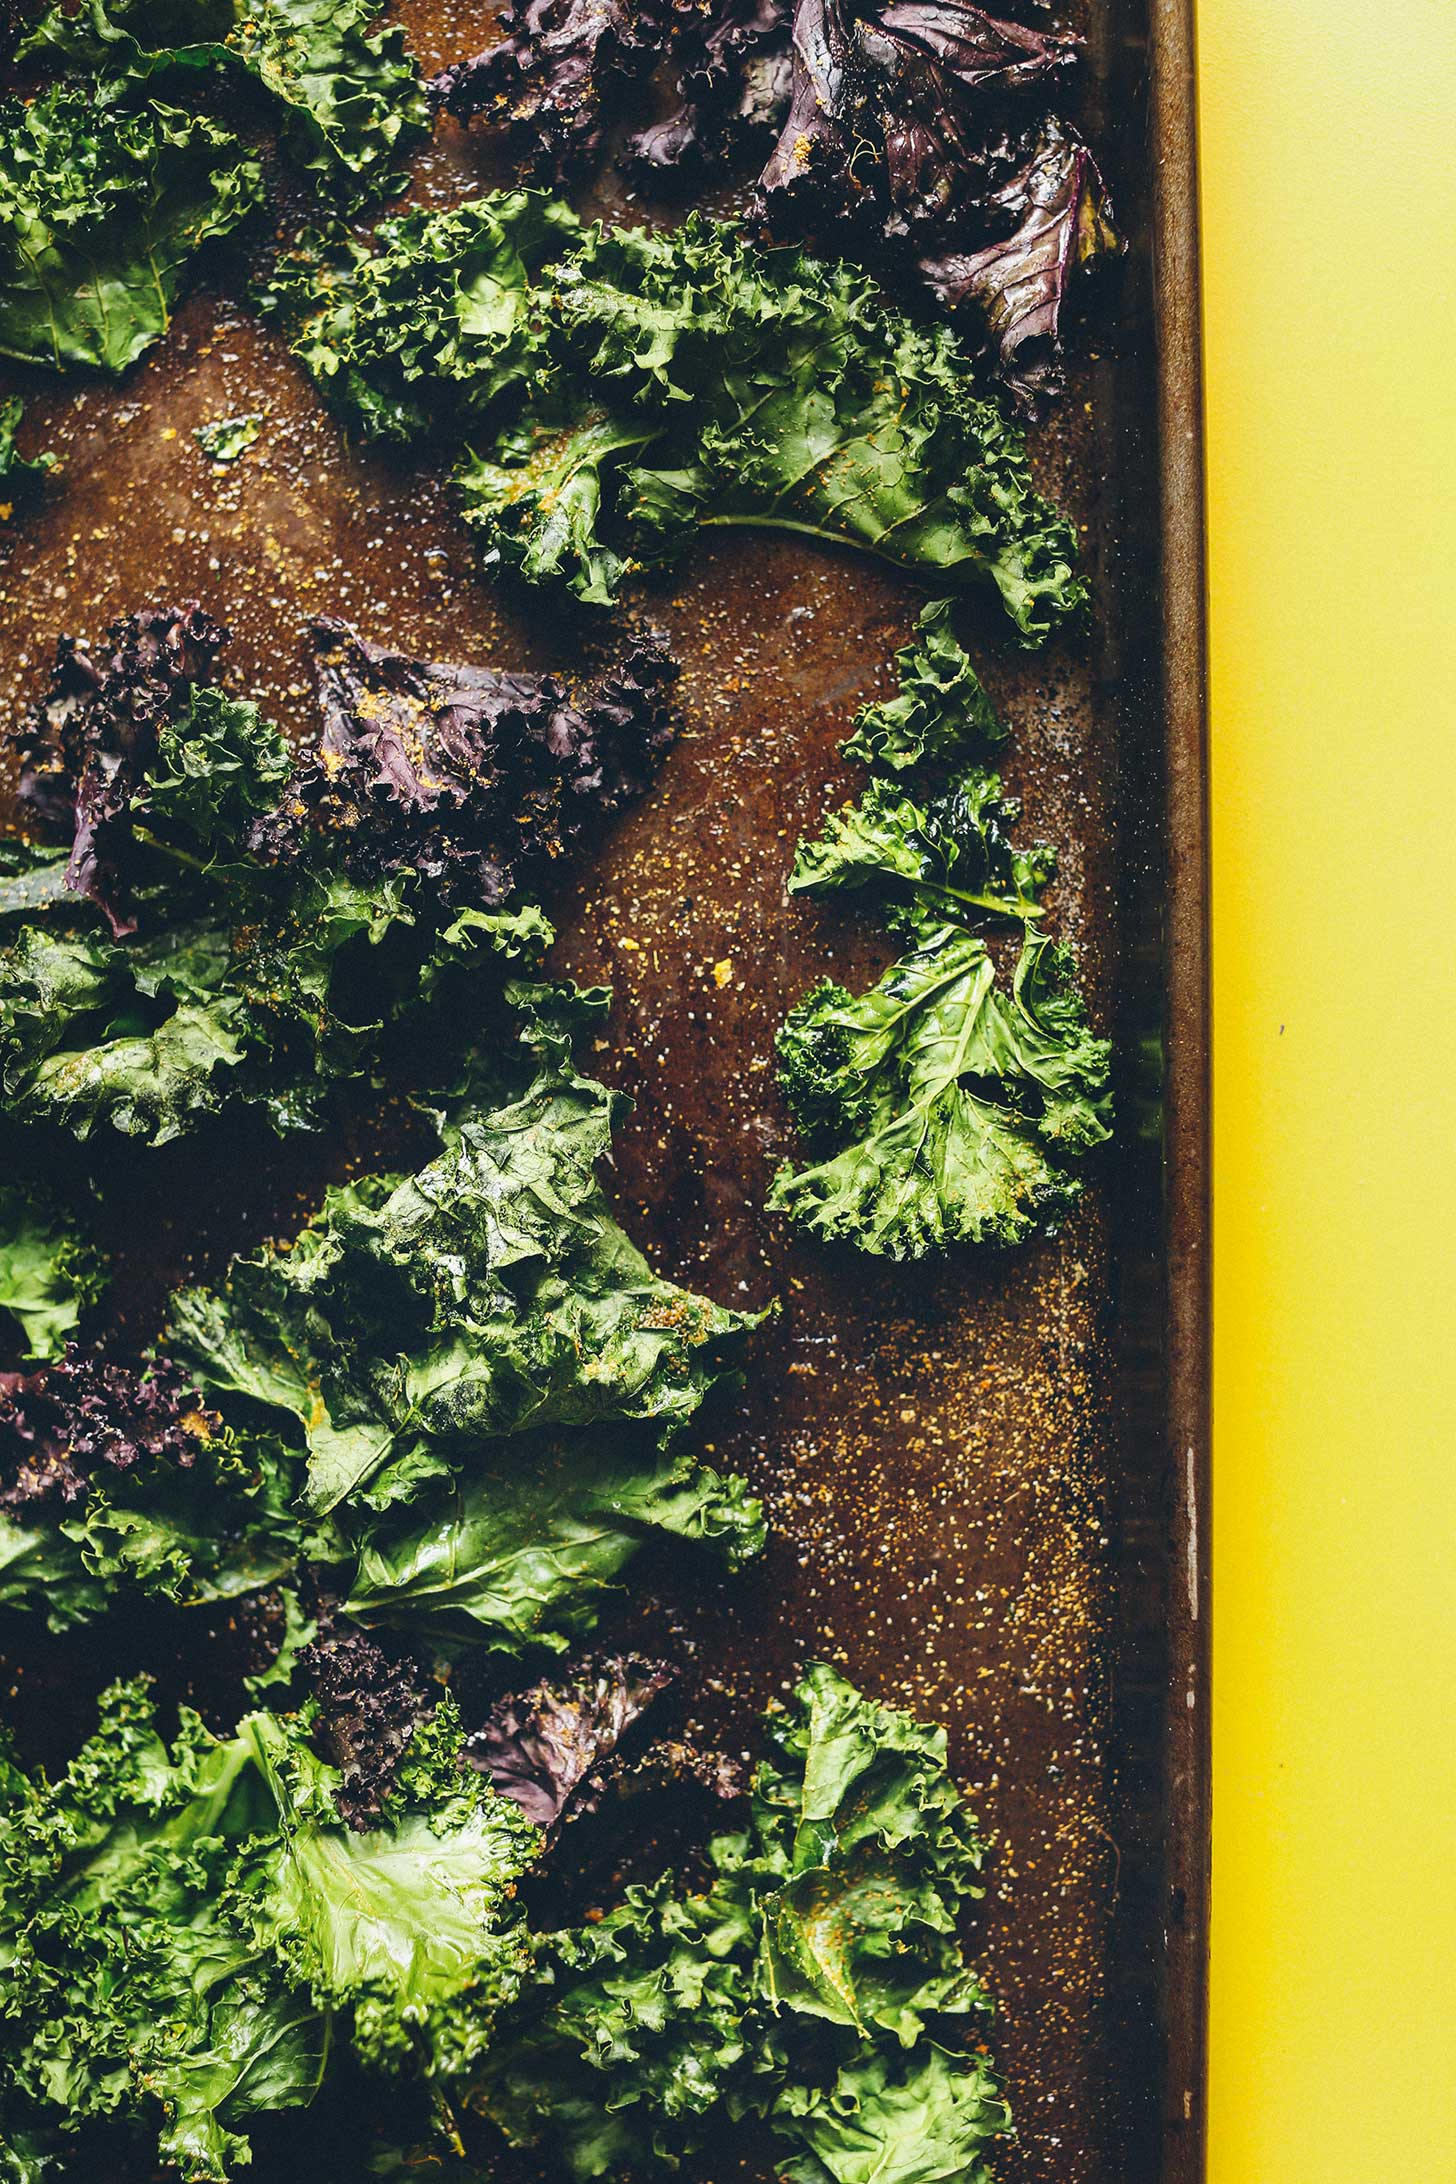 Perfectly crispy vegan Baked Kale Chips on a baking sheet